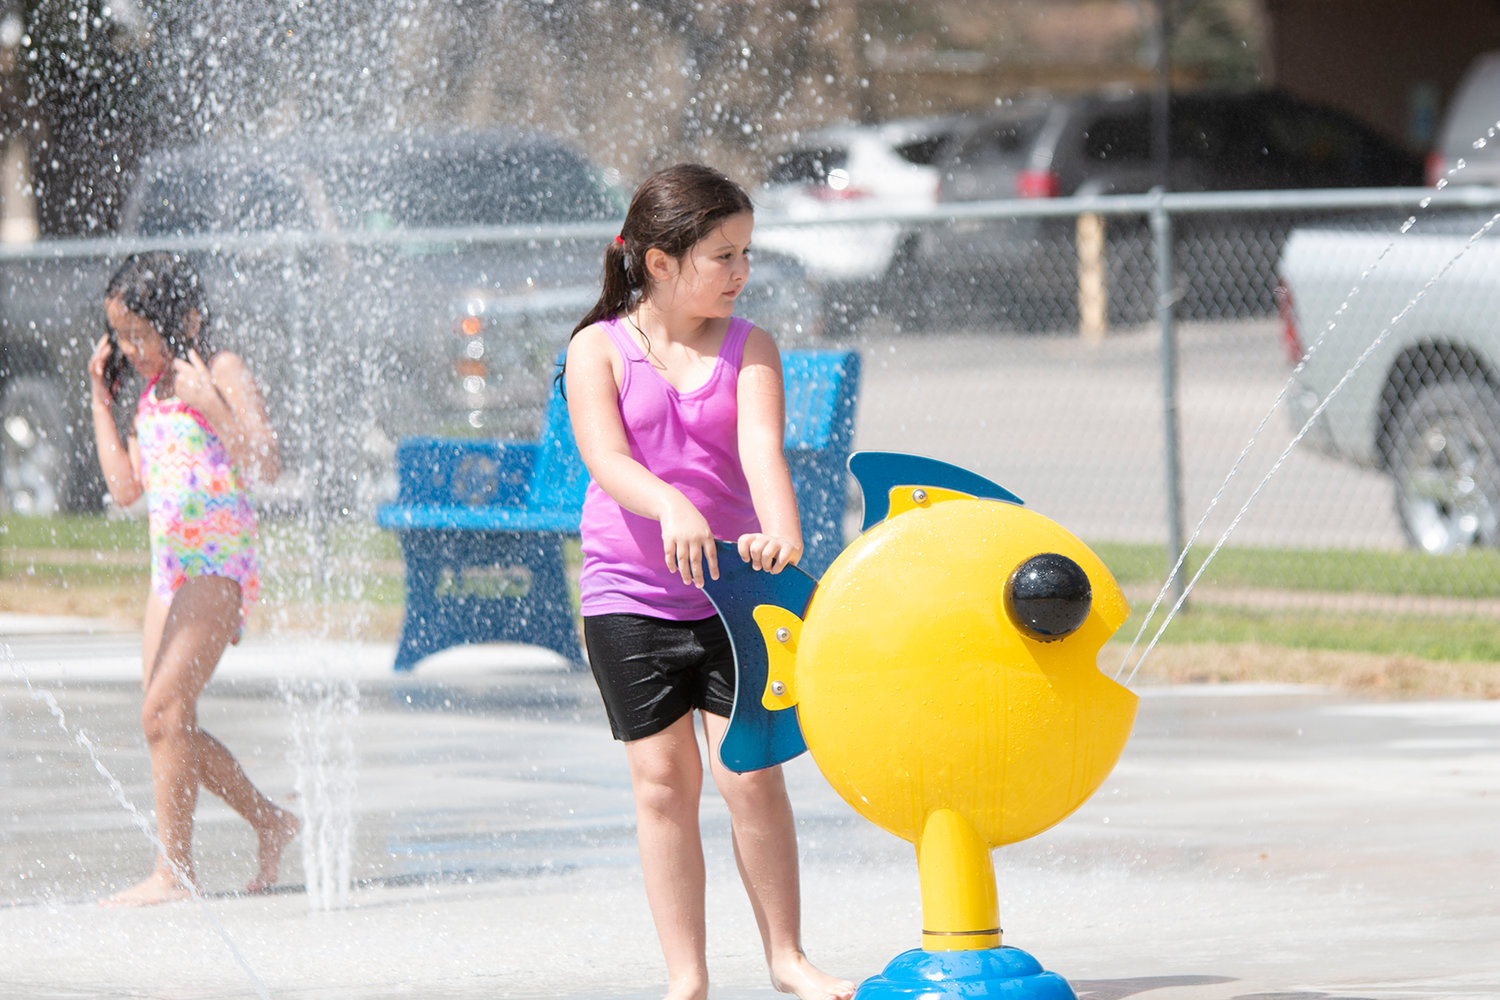 Nixon moved one step closer to having its own splash pad much like the one in Gonzales pictured above.